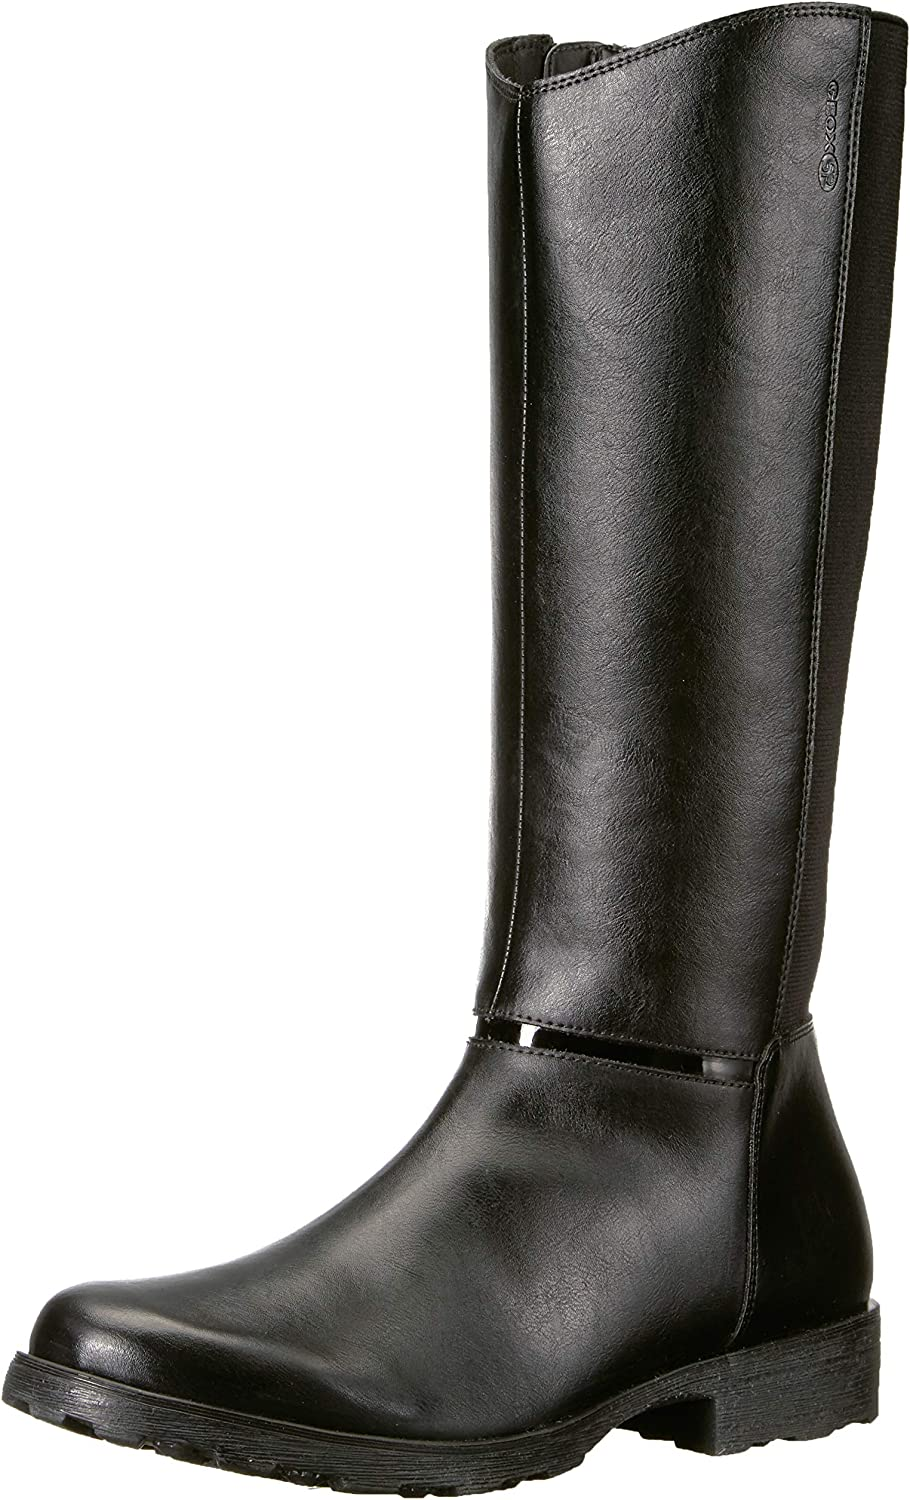 Geox Unisex-Child Olivia 11 Insulated Knee High Boot Free Regular dealer shipping Tall